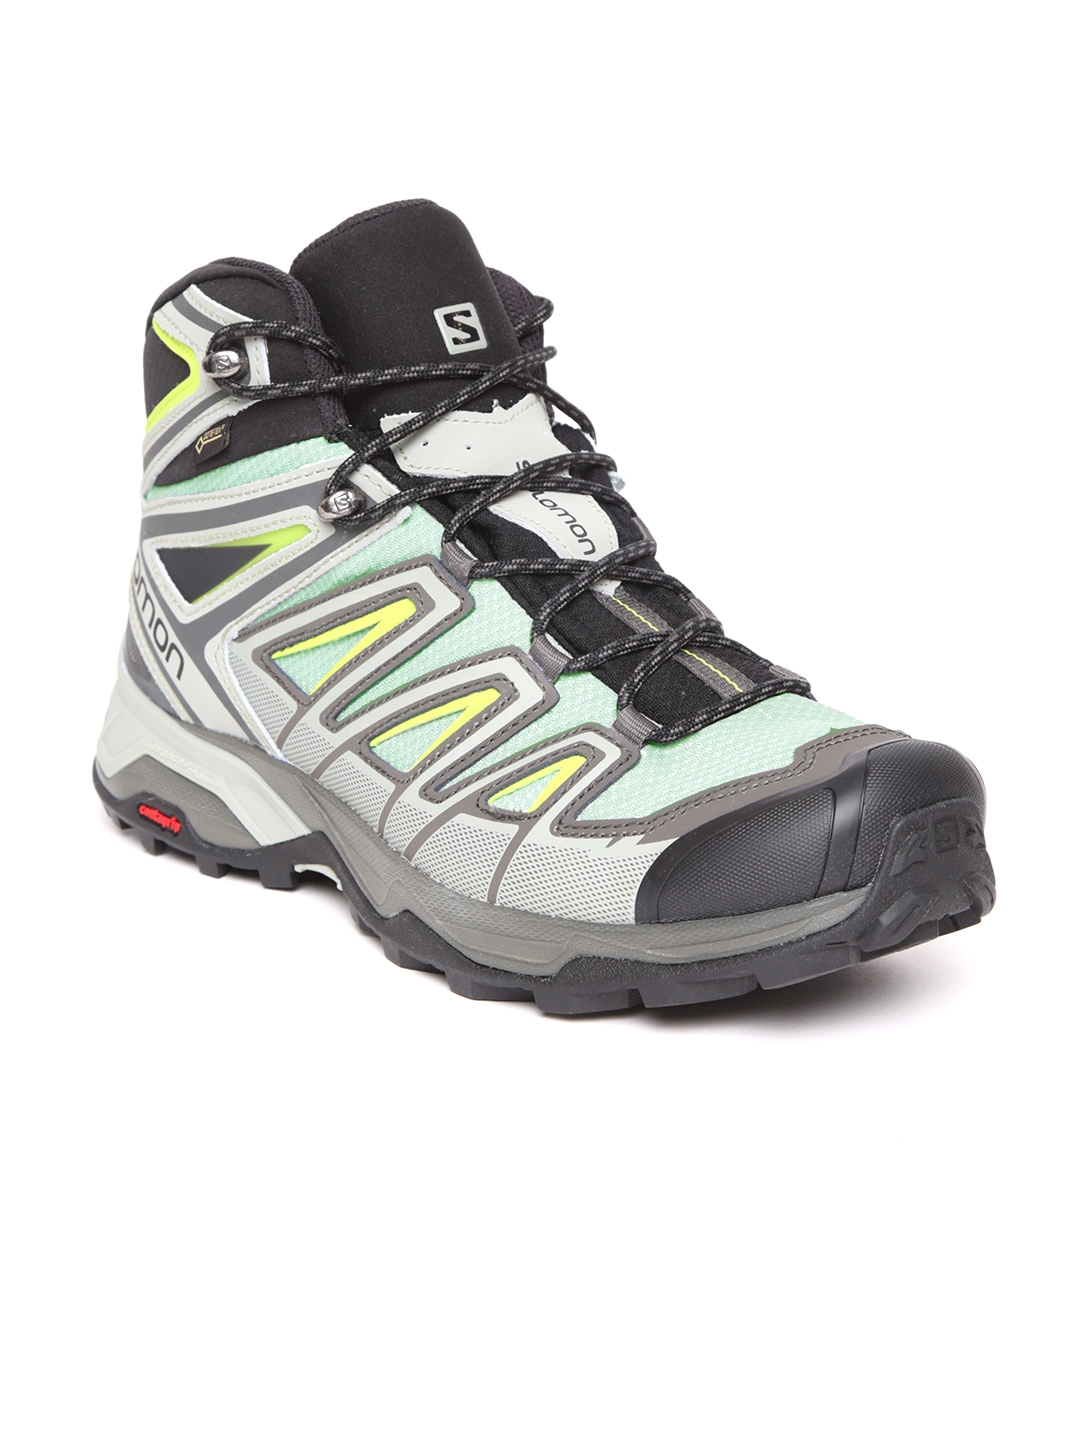 25a0a805caed37 Buy Salomon Men Grey X Ultra 3 GTX Mid Top Trekking Shoes - Sports ...